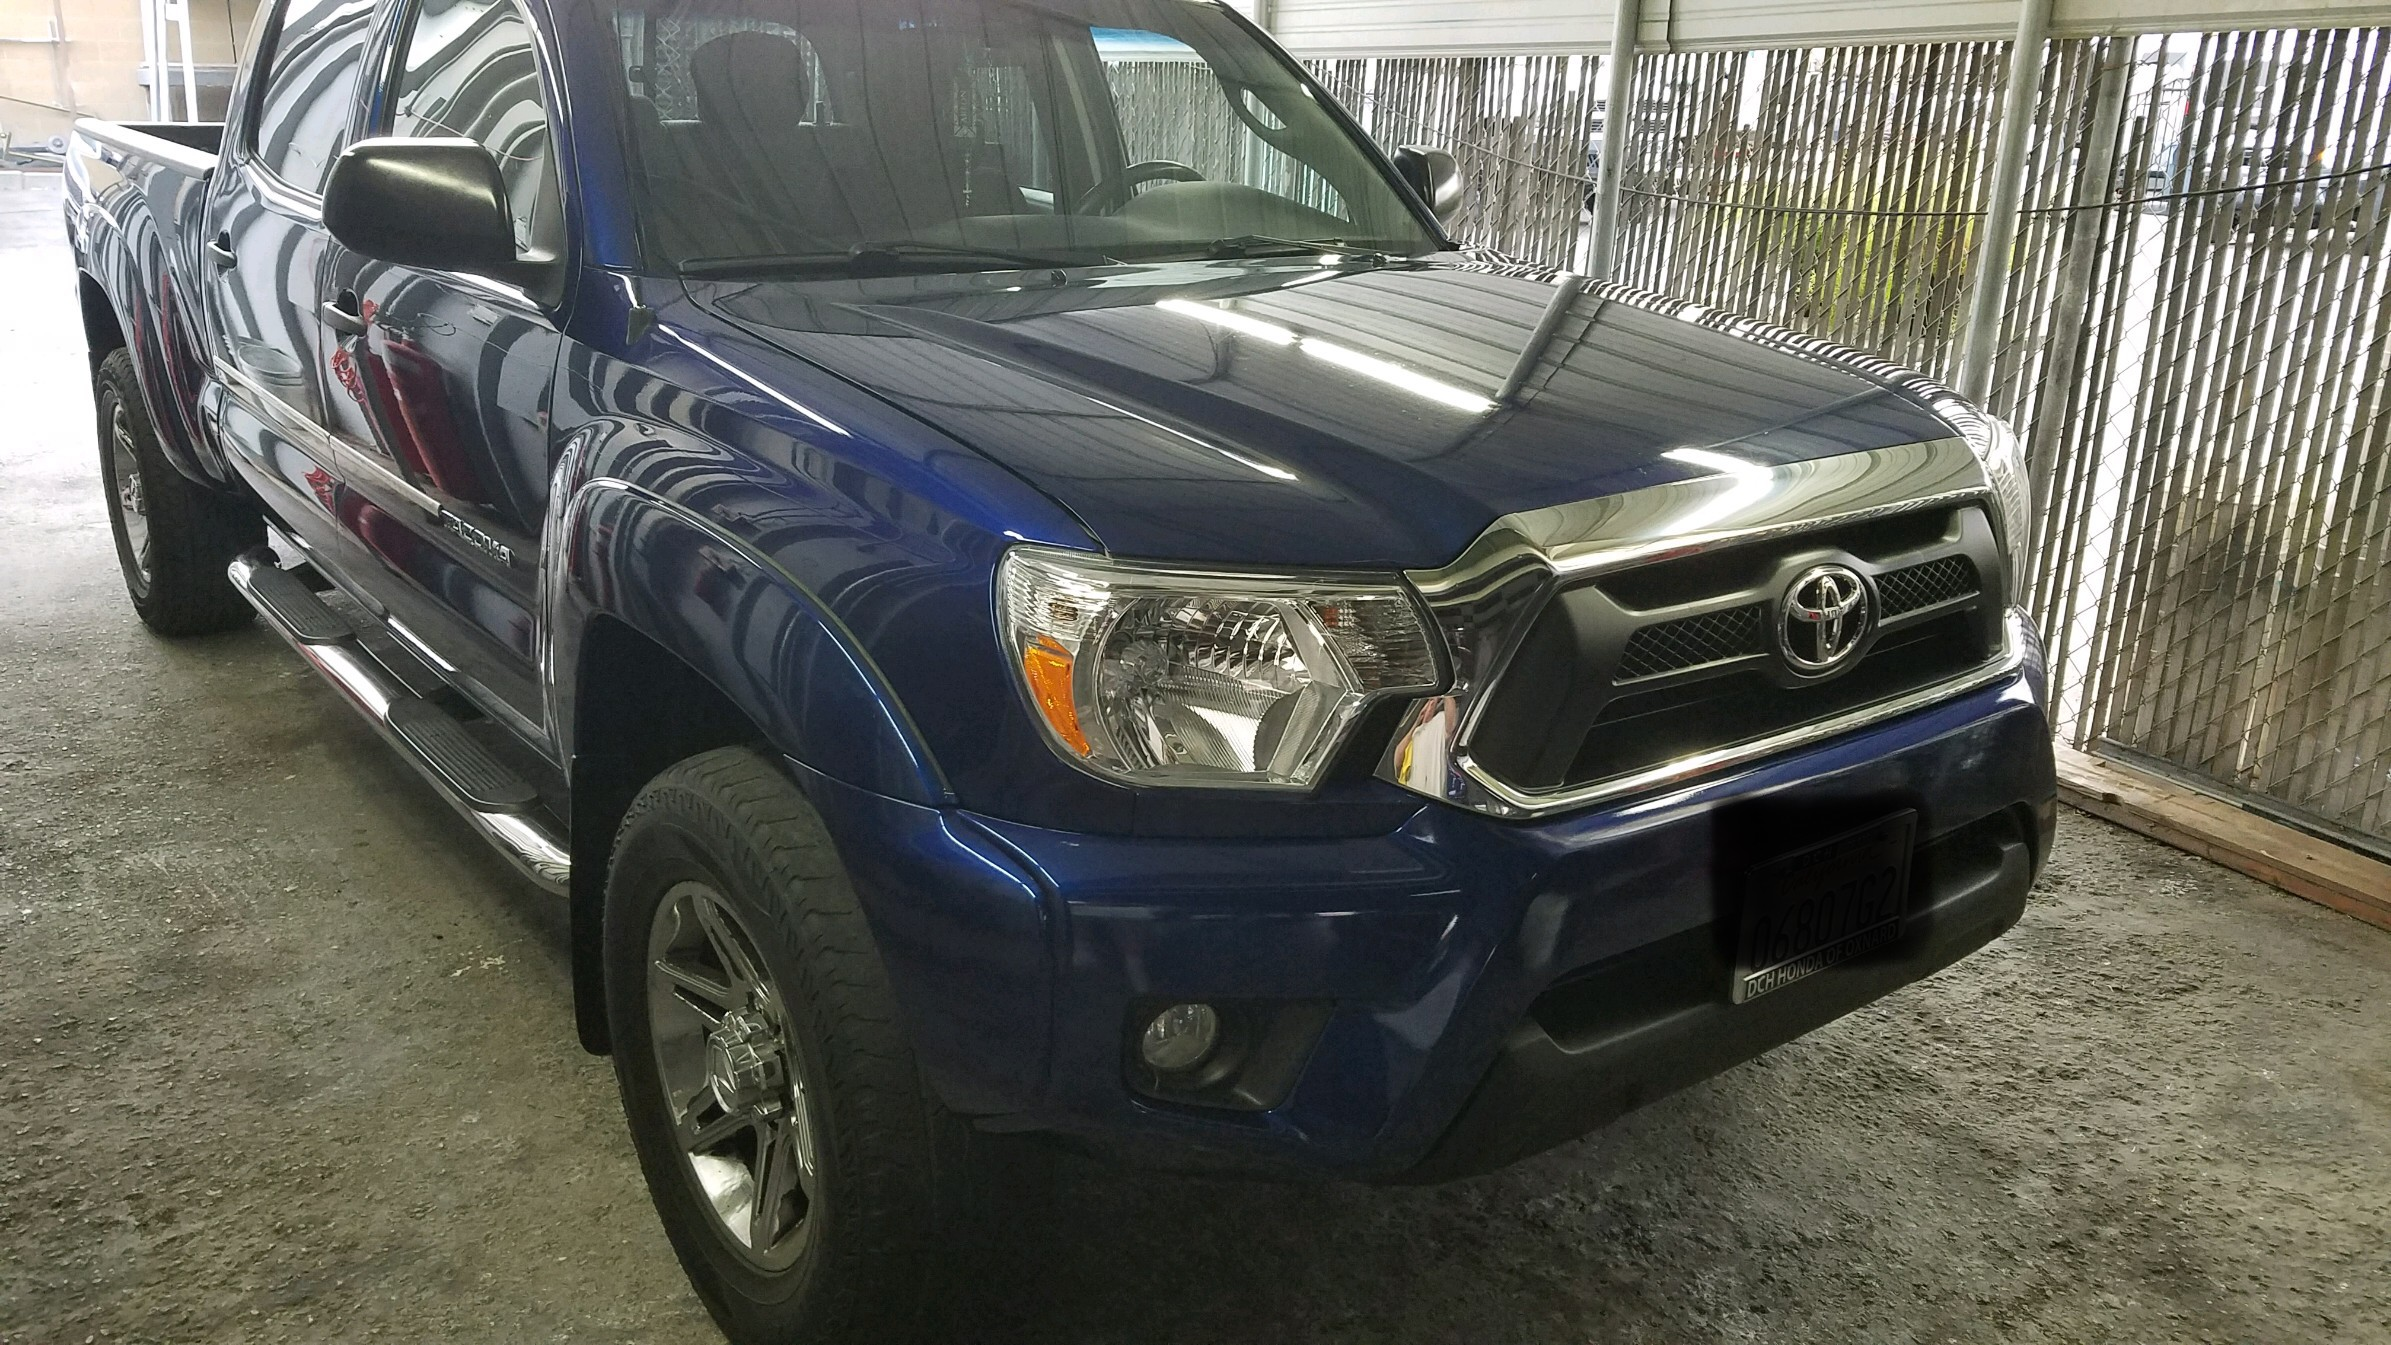 2014 Toyota Tacoma Pre Runner Front End Collision Repair